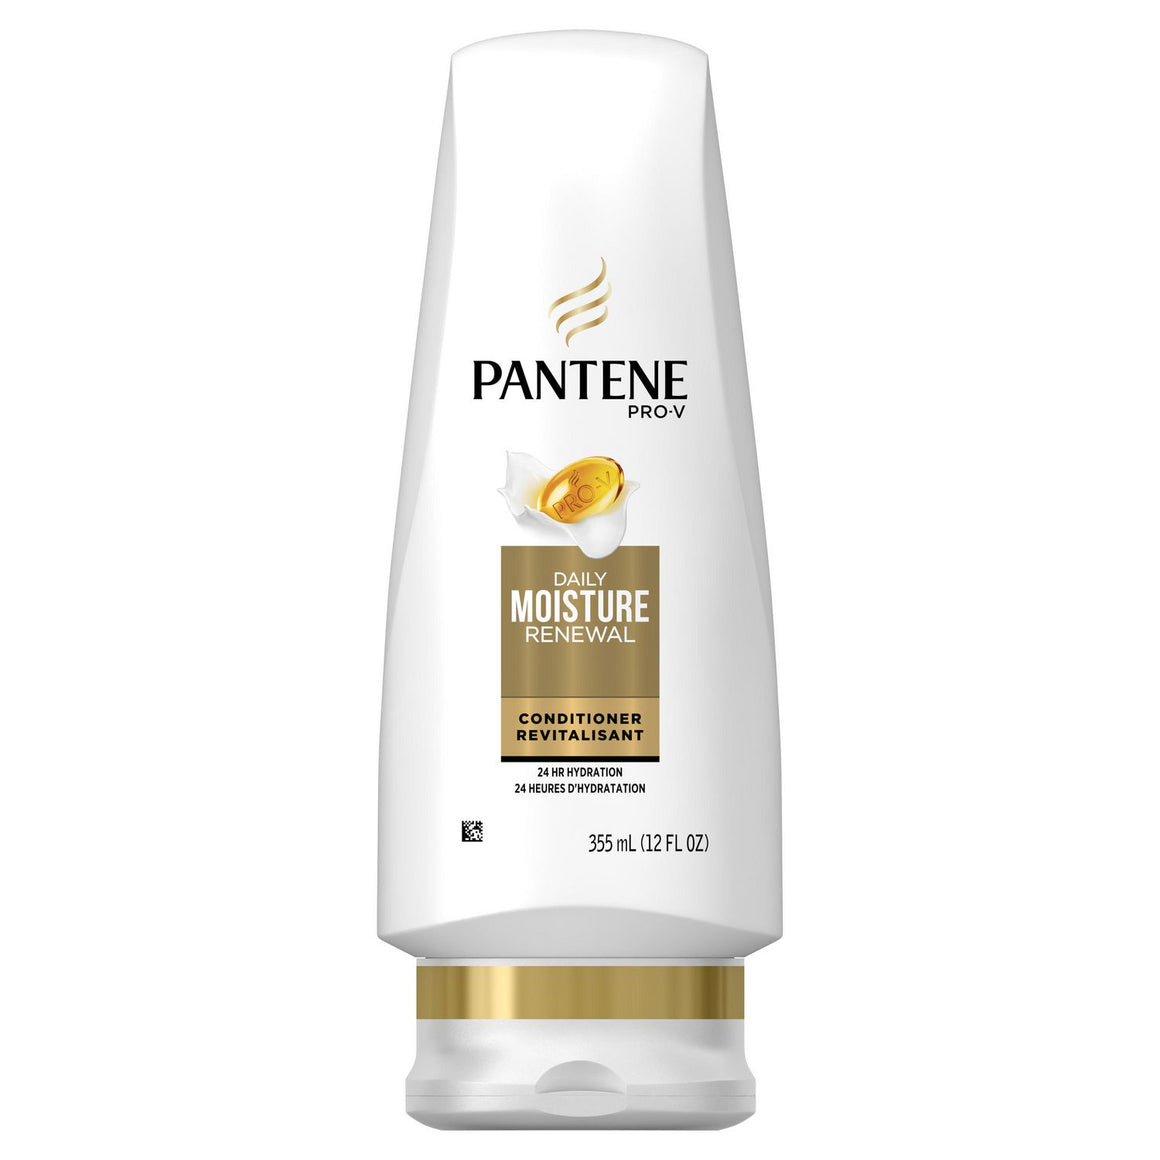 Pantene Pro-V Daily Moisture Renewal Conditioner 355ml